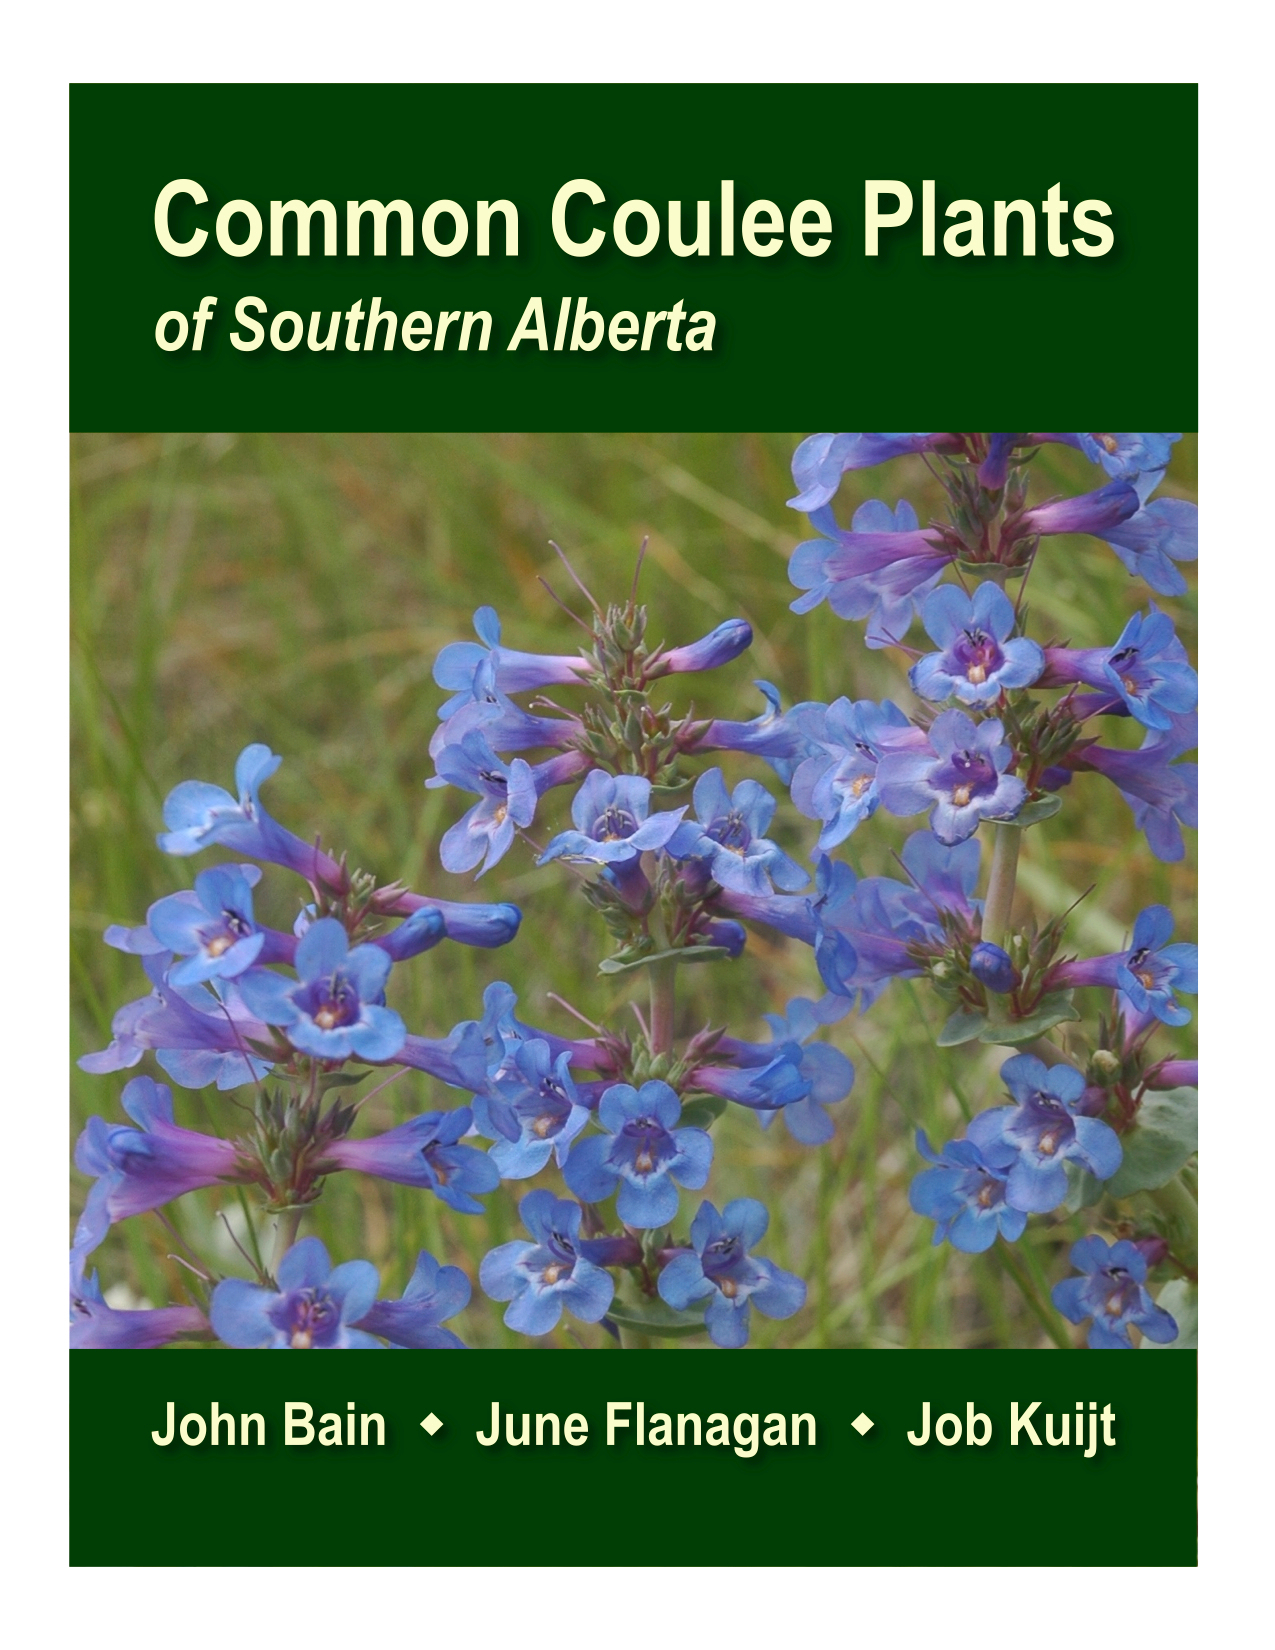 Common Coulee Plants of Southern Alberta book cover